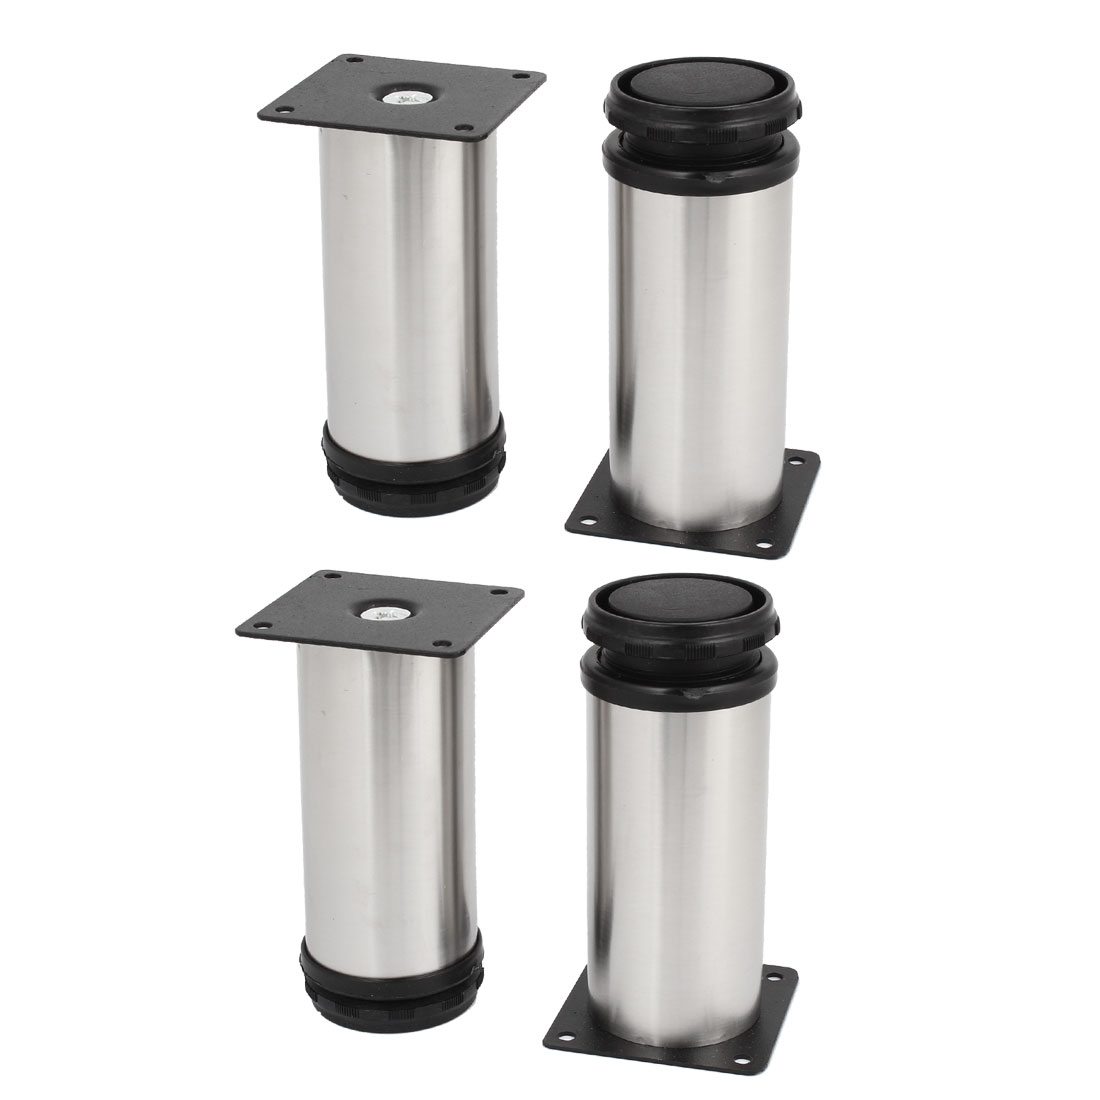 12cm High Stainless Steel Chair Cabinet Support Adjustable Leg Feet 4 Pieces